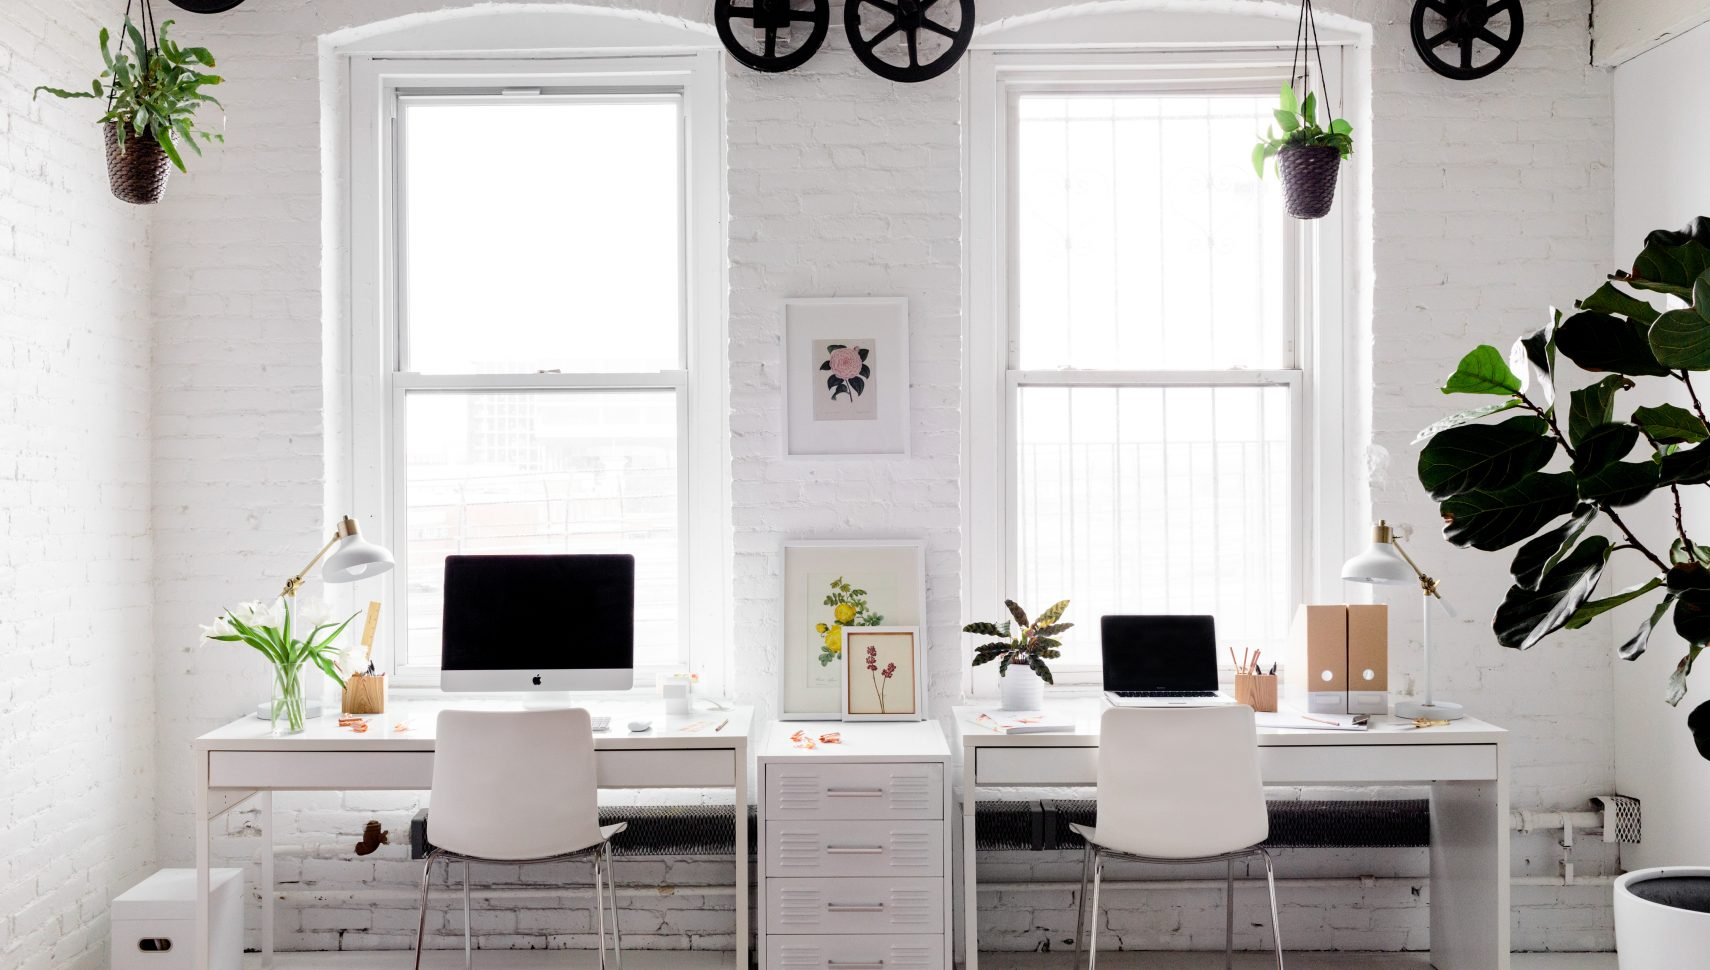 Feng Shui Home Design how to achieve feng shui for your home office | havenly's blog!